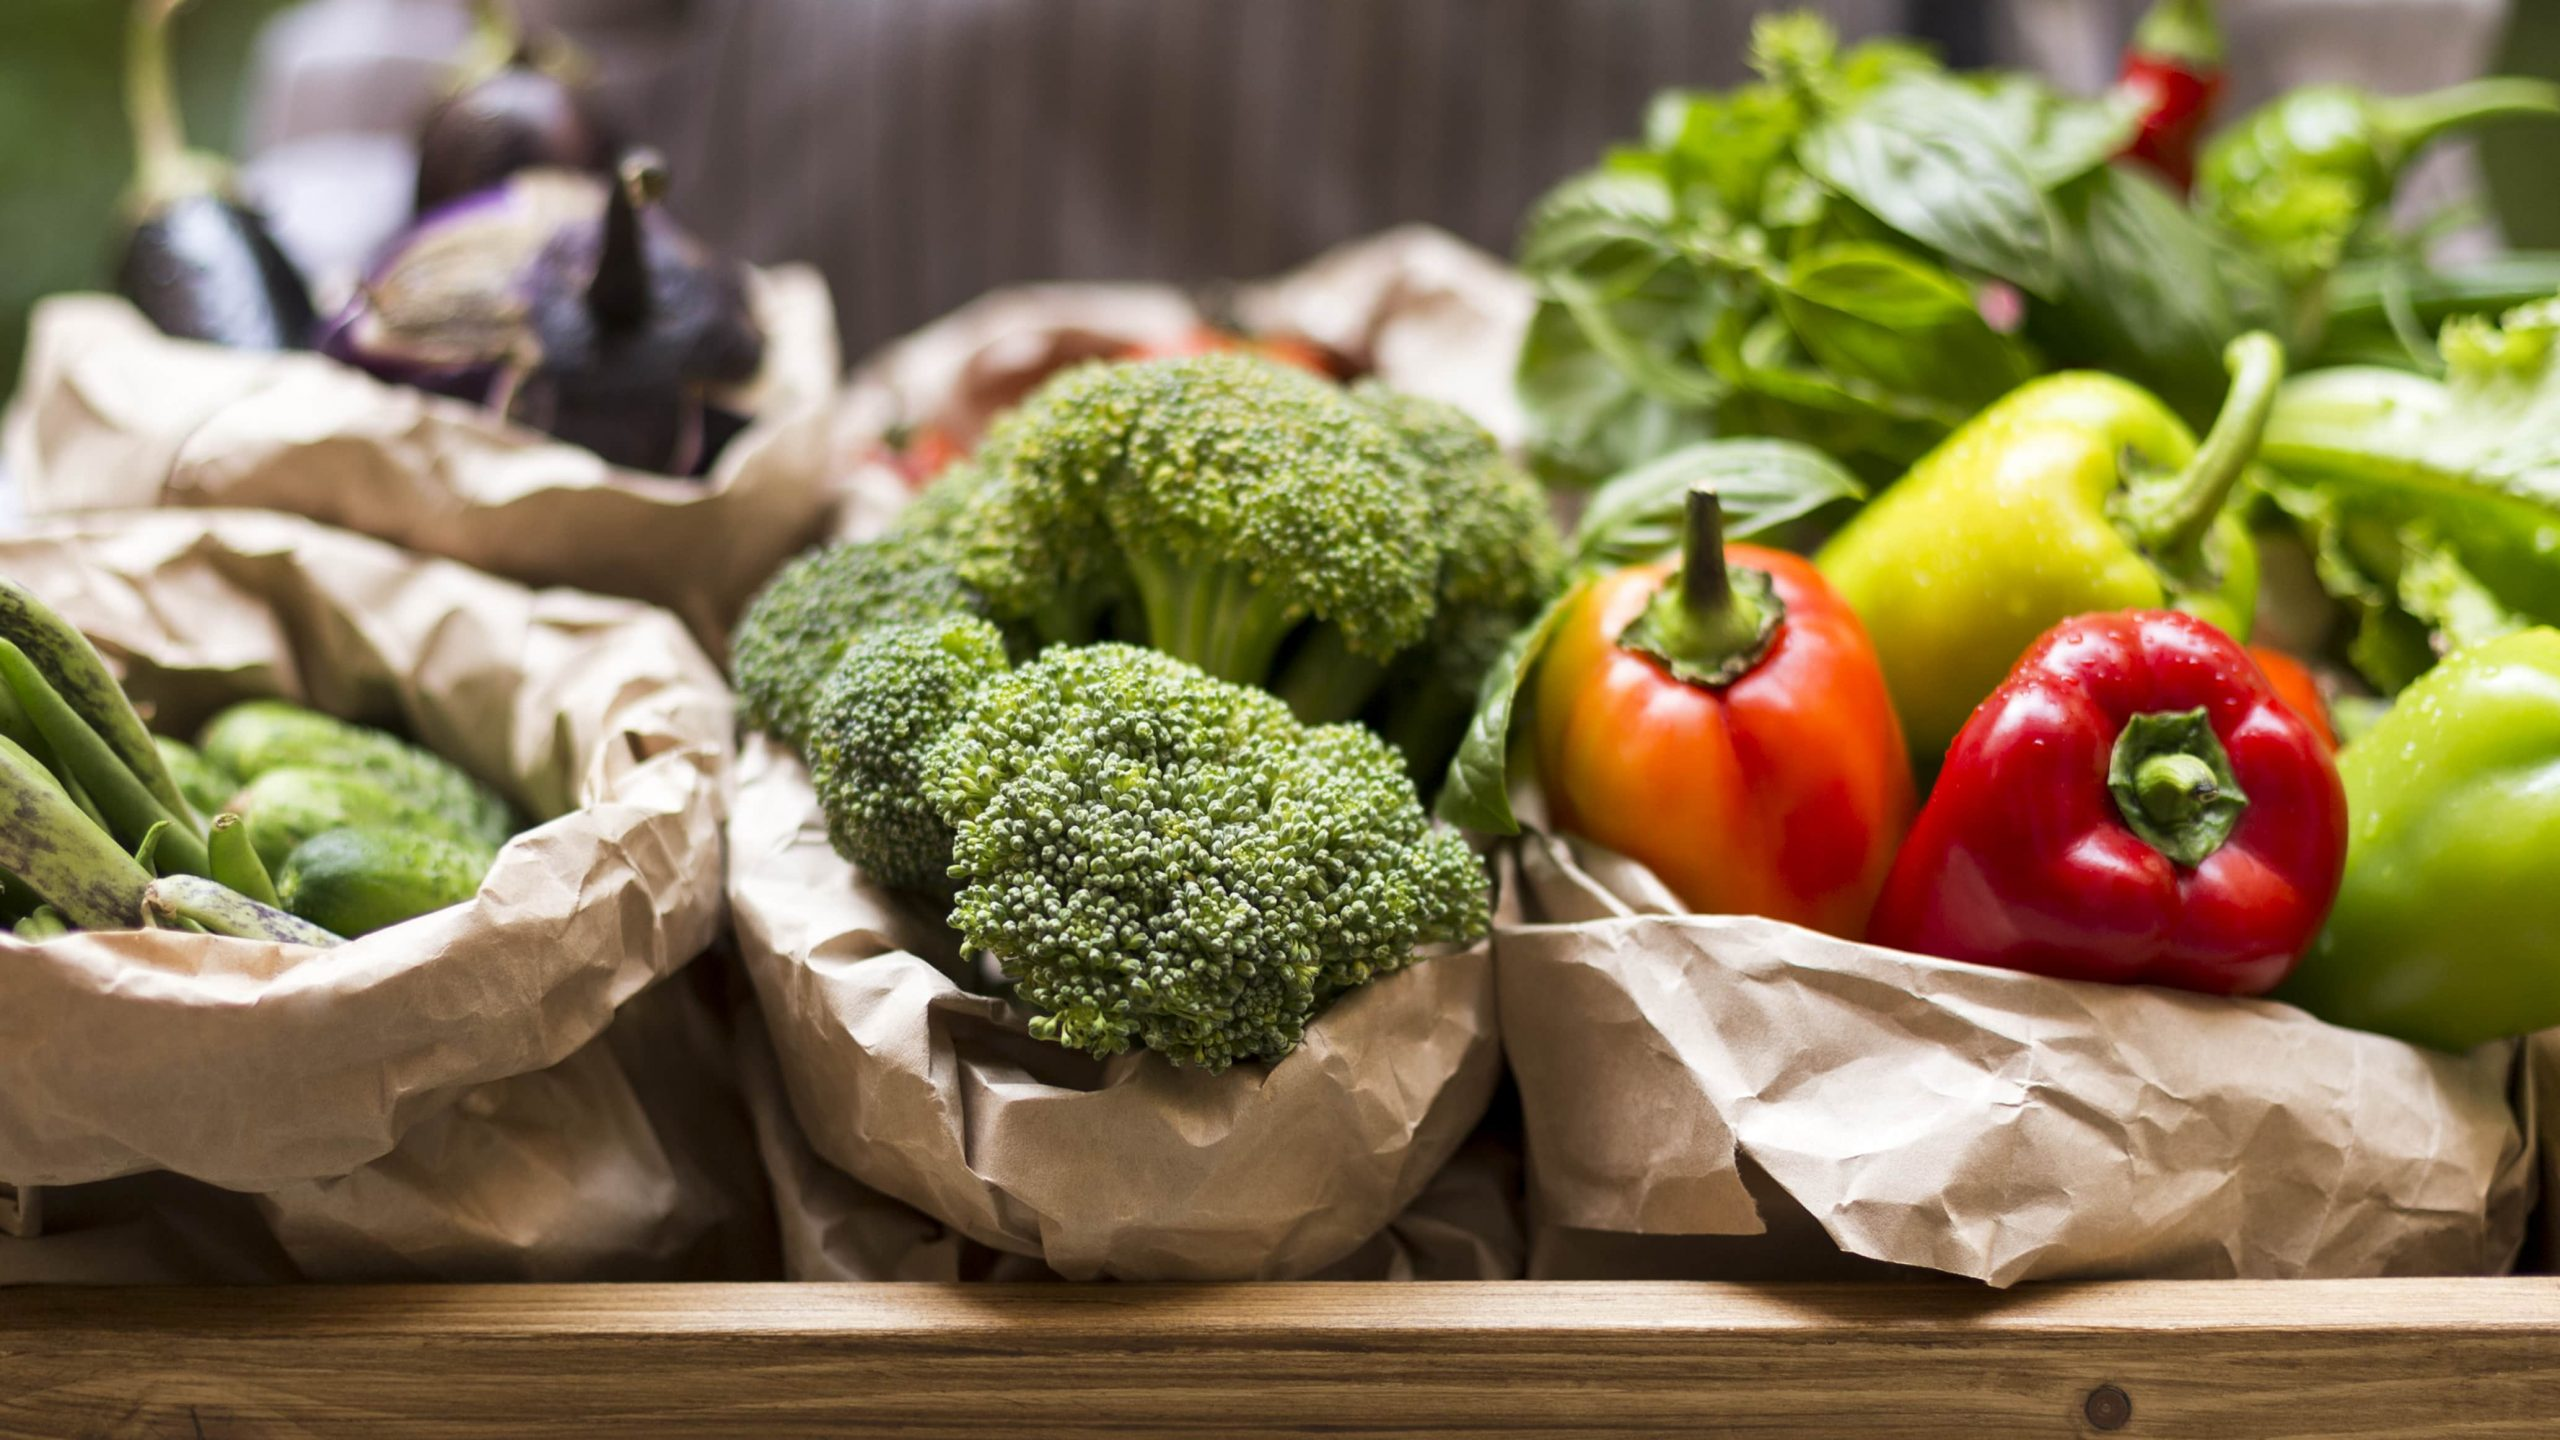 Green cauliflower and red and yellow paprika wrapped in paper